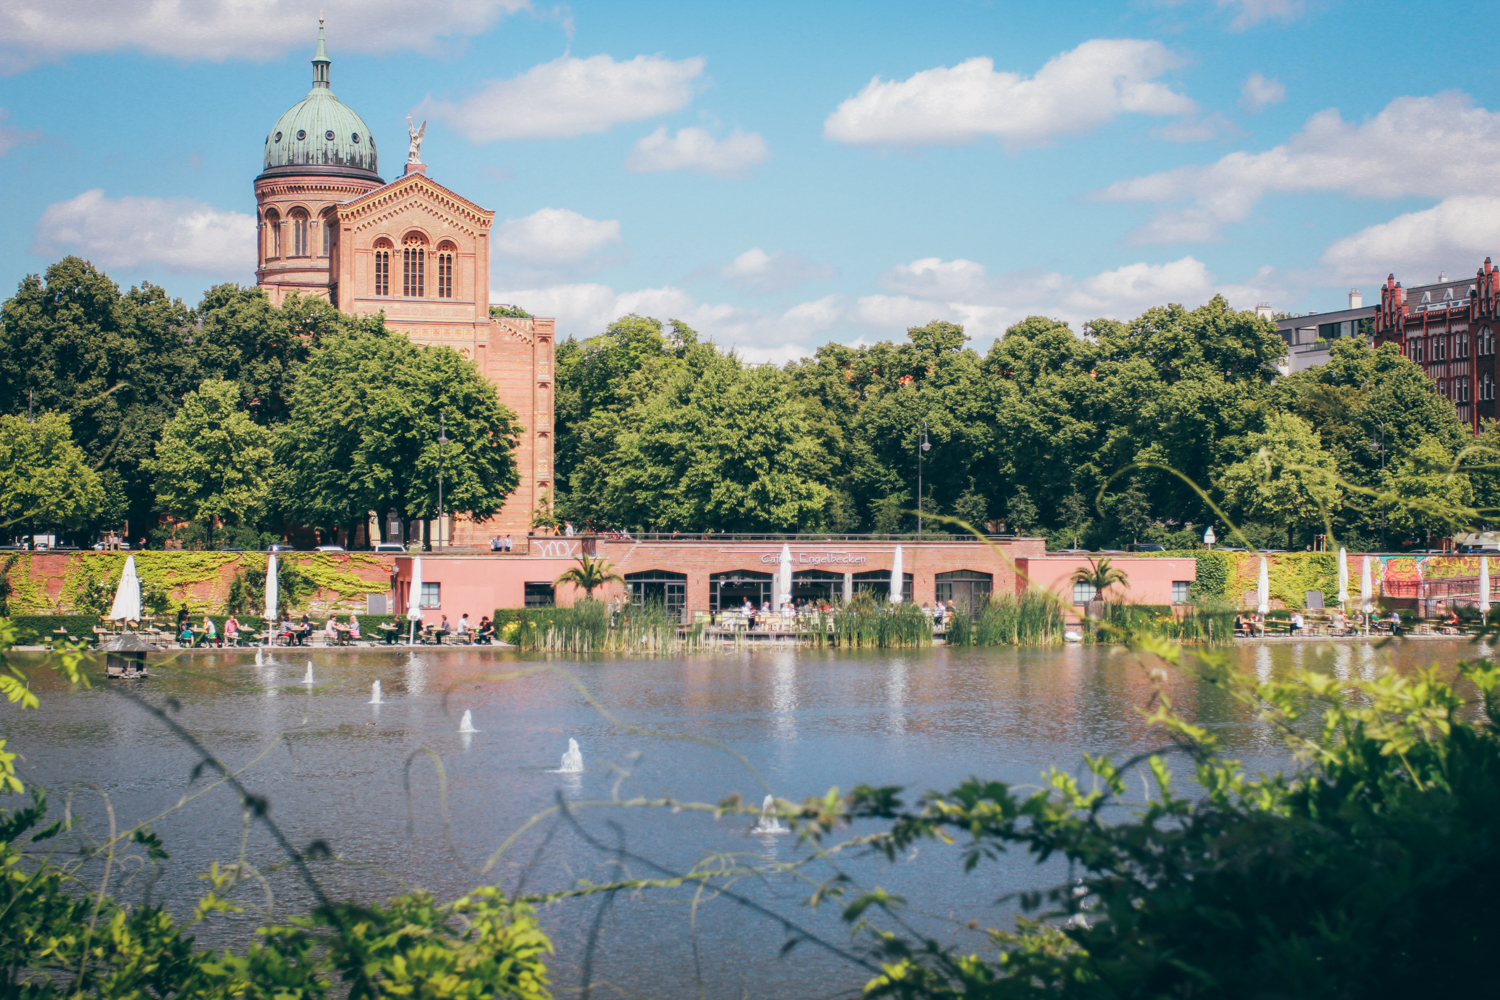 5 Charming Cafes & Restaurants in Berlin by the Water